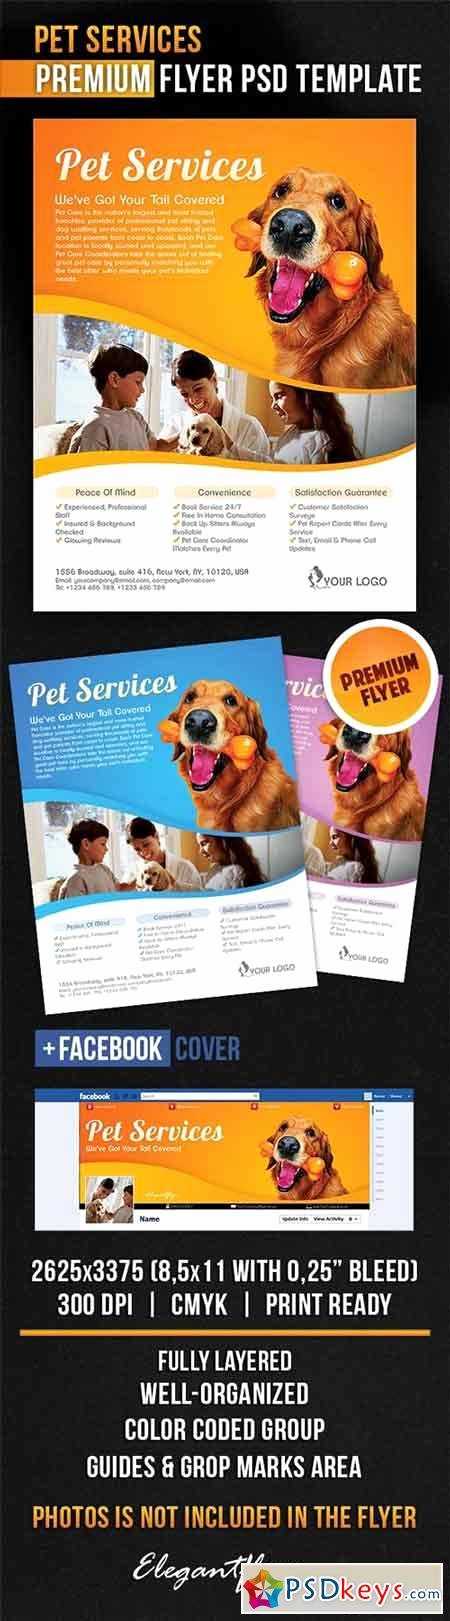 Pet Services Flyer Psd Template Cover Free